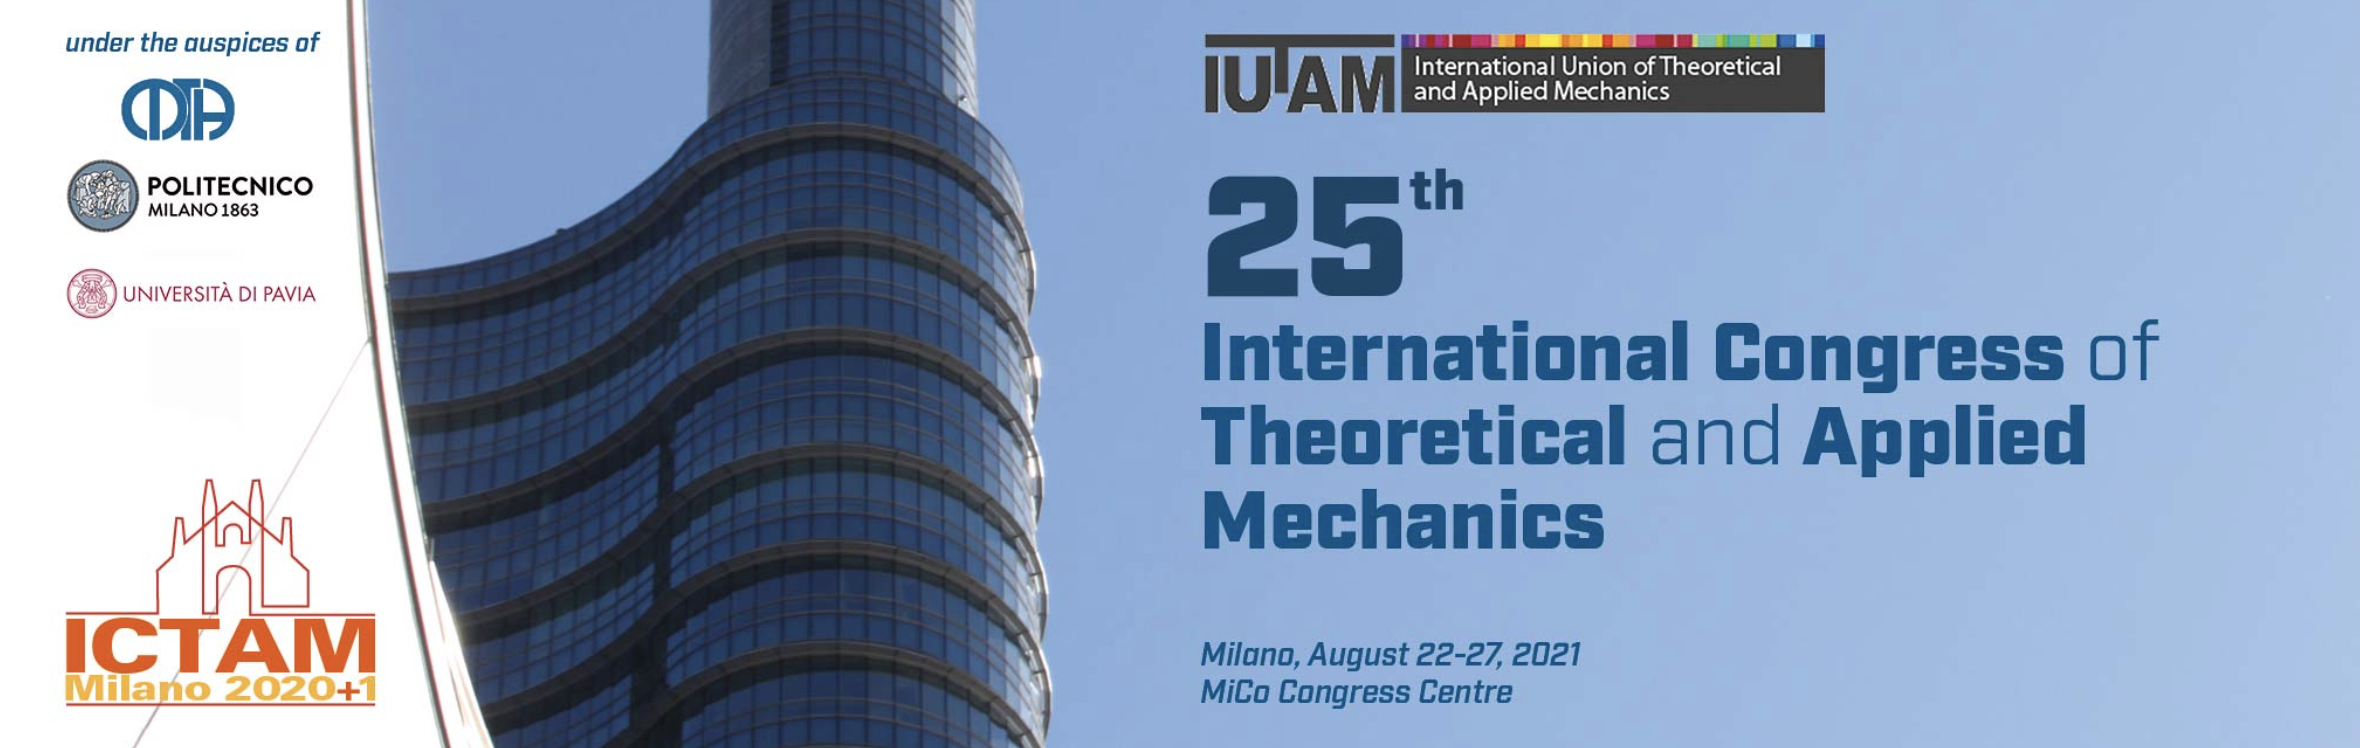 25th International Congress of Theoretical and Applied Mechanics